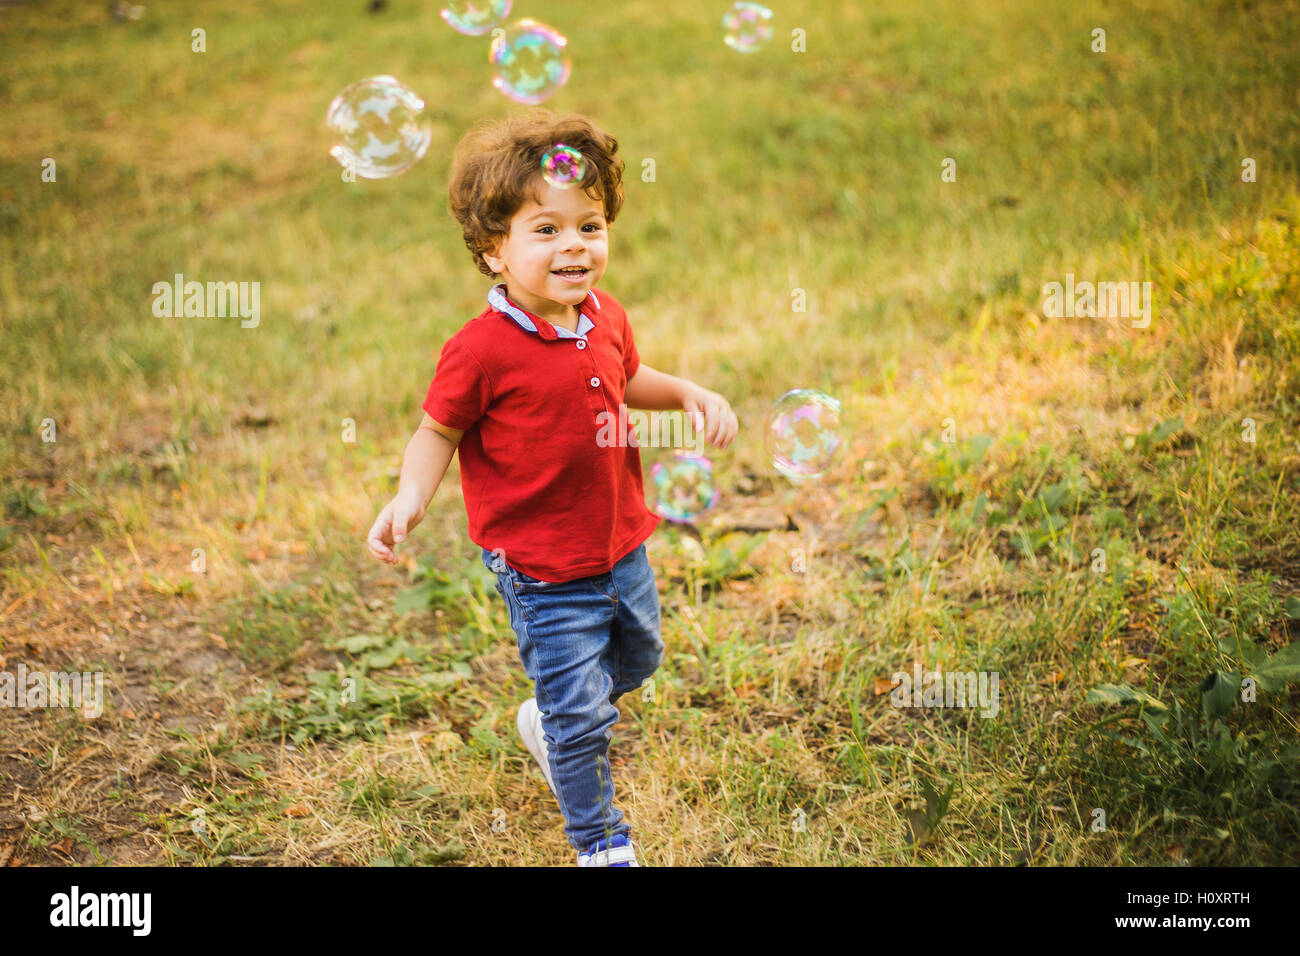 Little boy playing in the park with bubbles - Stock Image